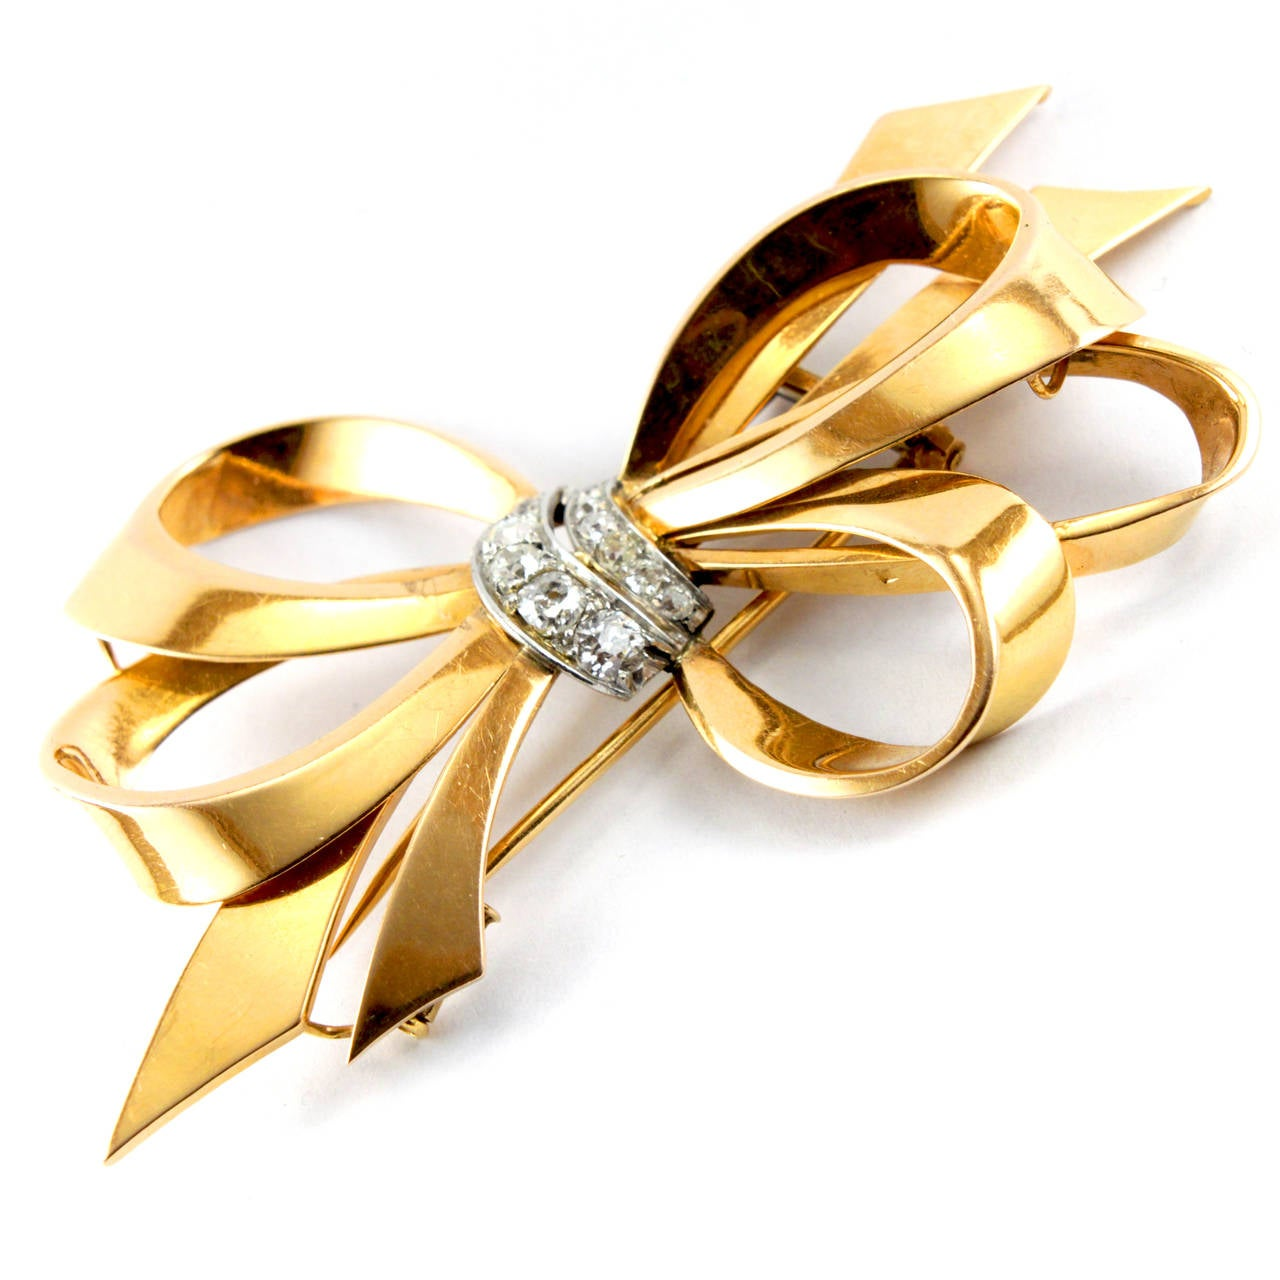 Cartier Gold and Diamond Brooch  A very glamorous and chic Ribbon Bow Brooch by Cartier Paris from the 1940s. It is set with circa 2 carats of old cut diamonds in 18k yellow gold. Signed.